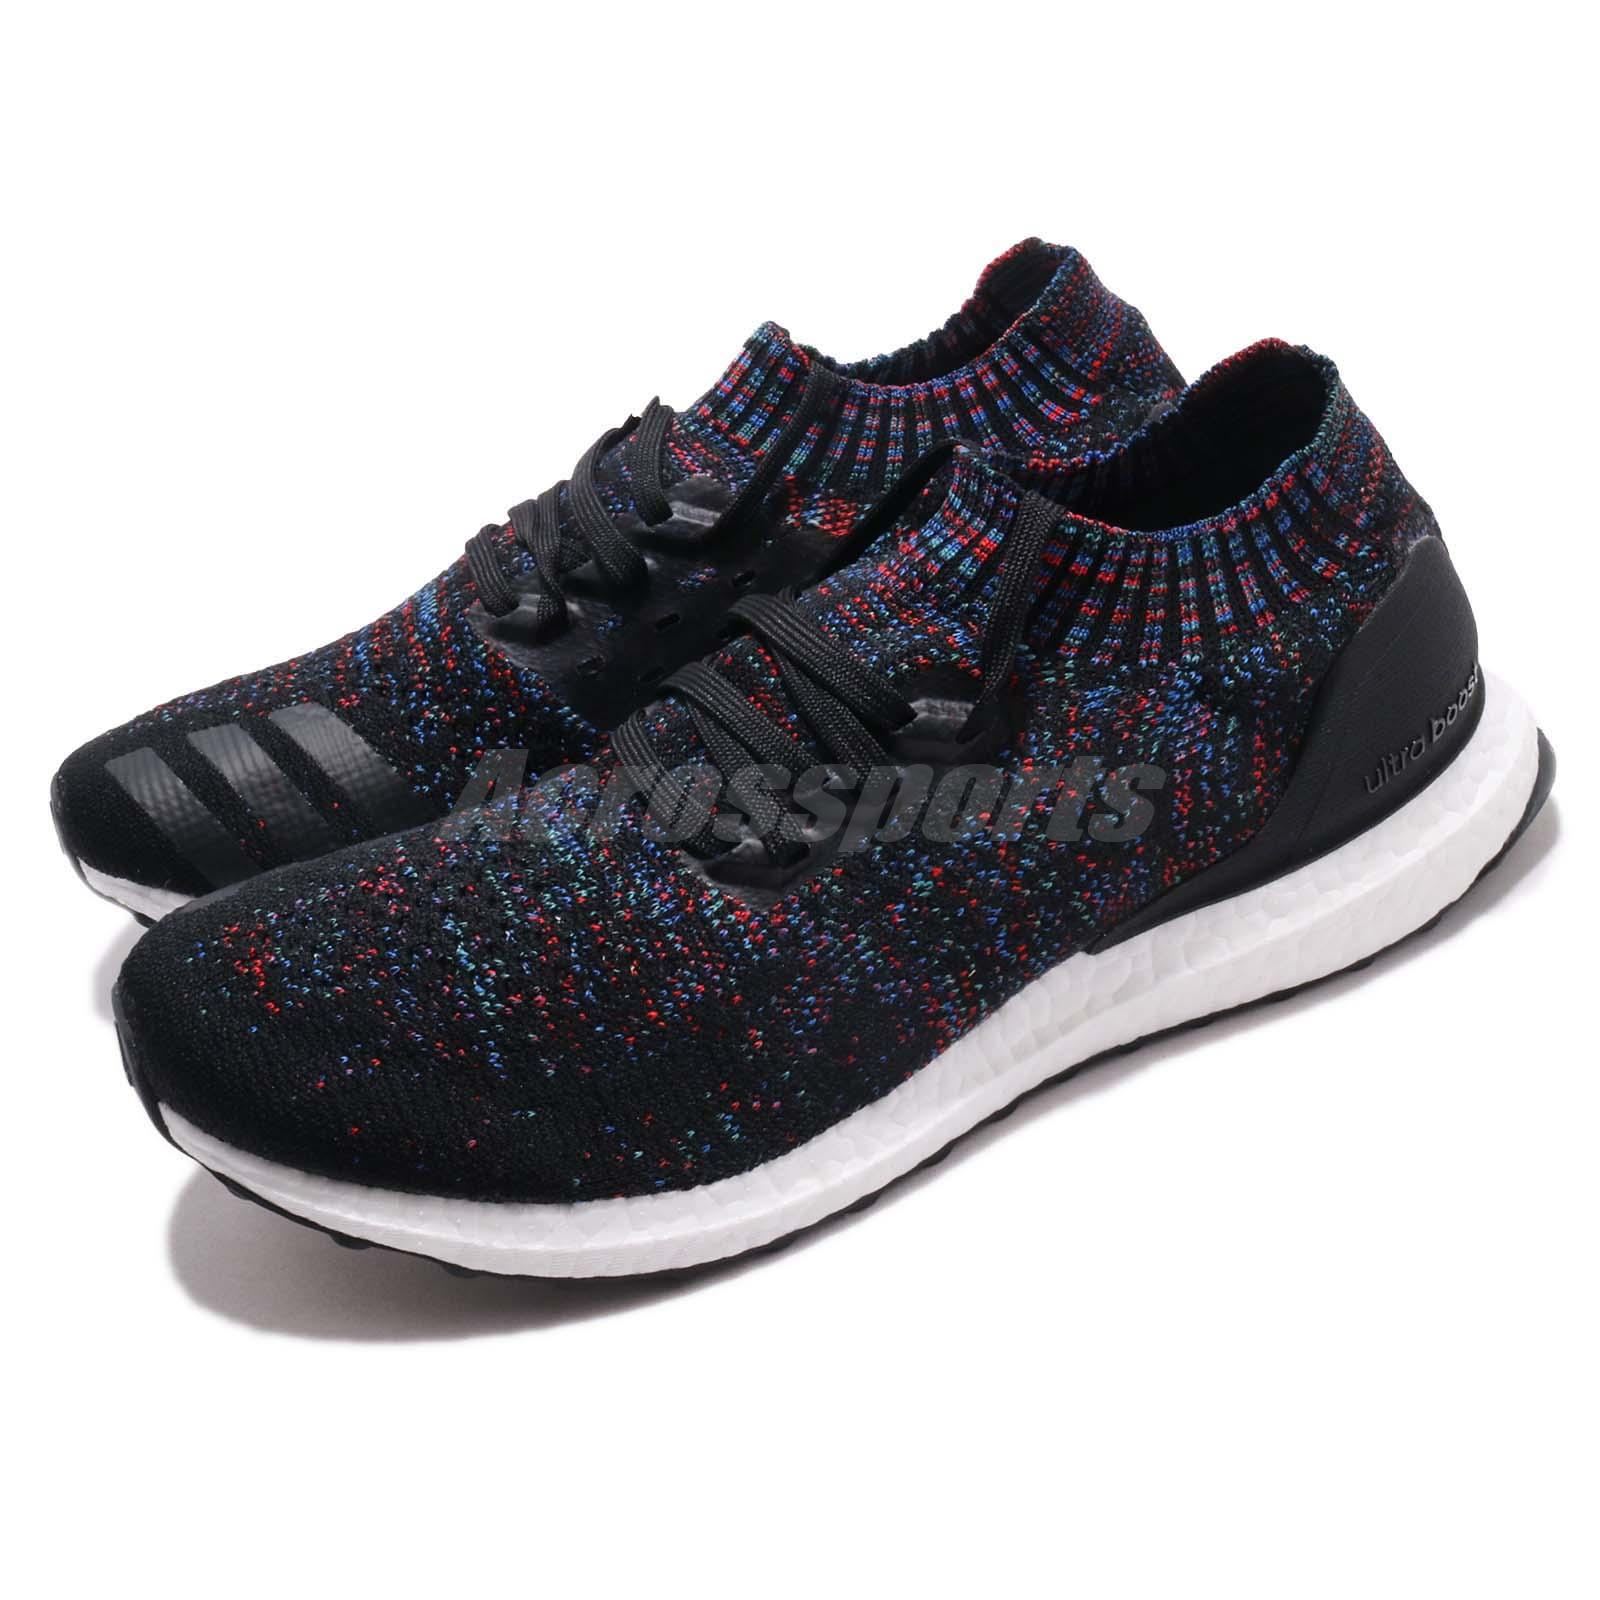 f3c7238cc99 Details about adidas UltraBOOST Uncaged Black Active Red Blue Men Women  Running Shoes B37692